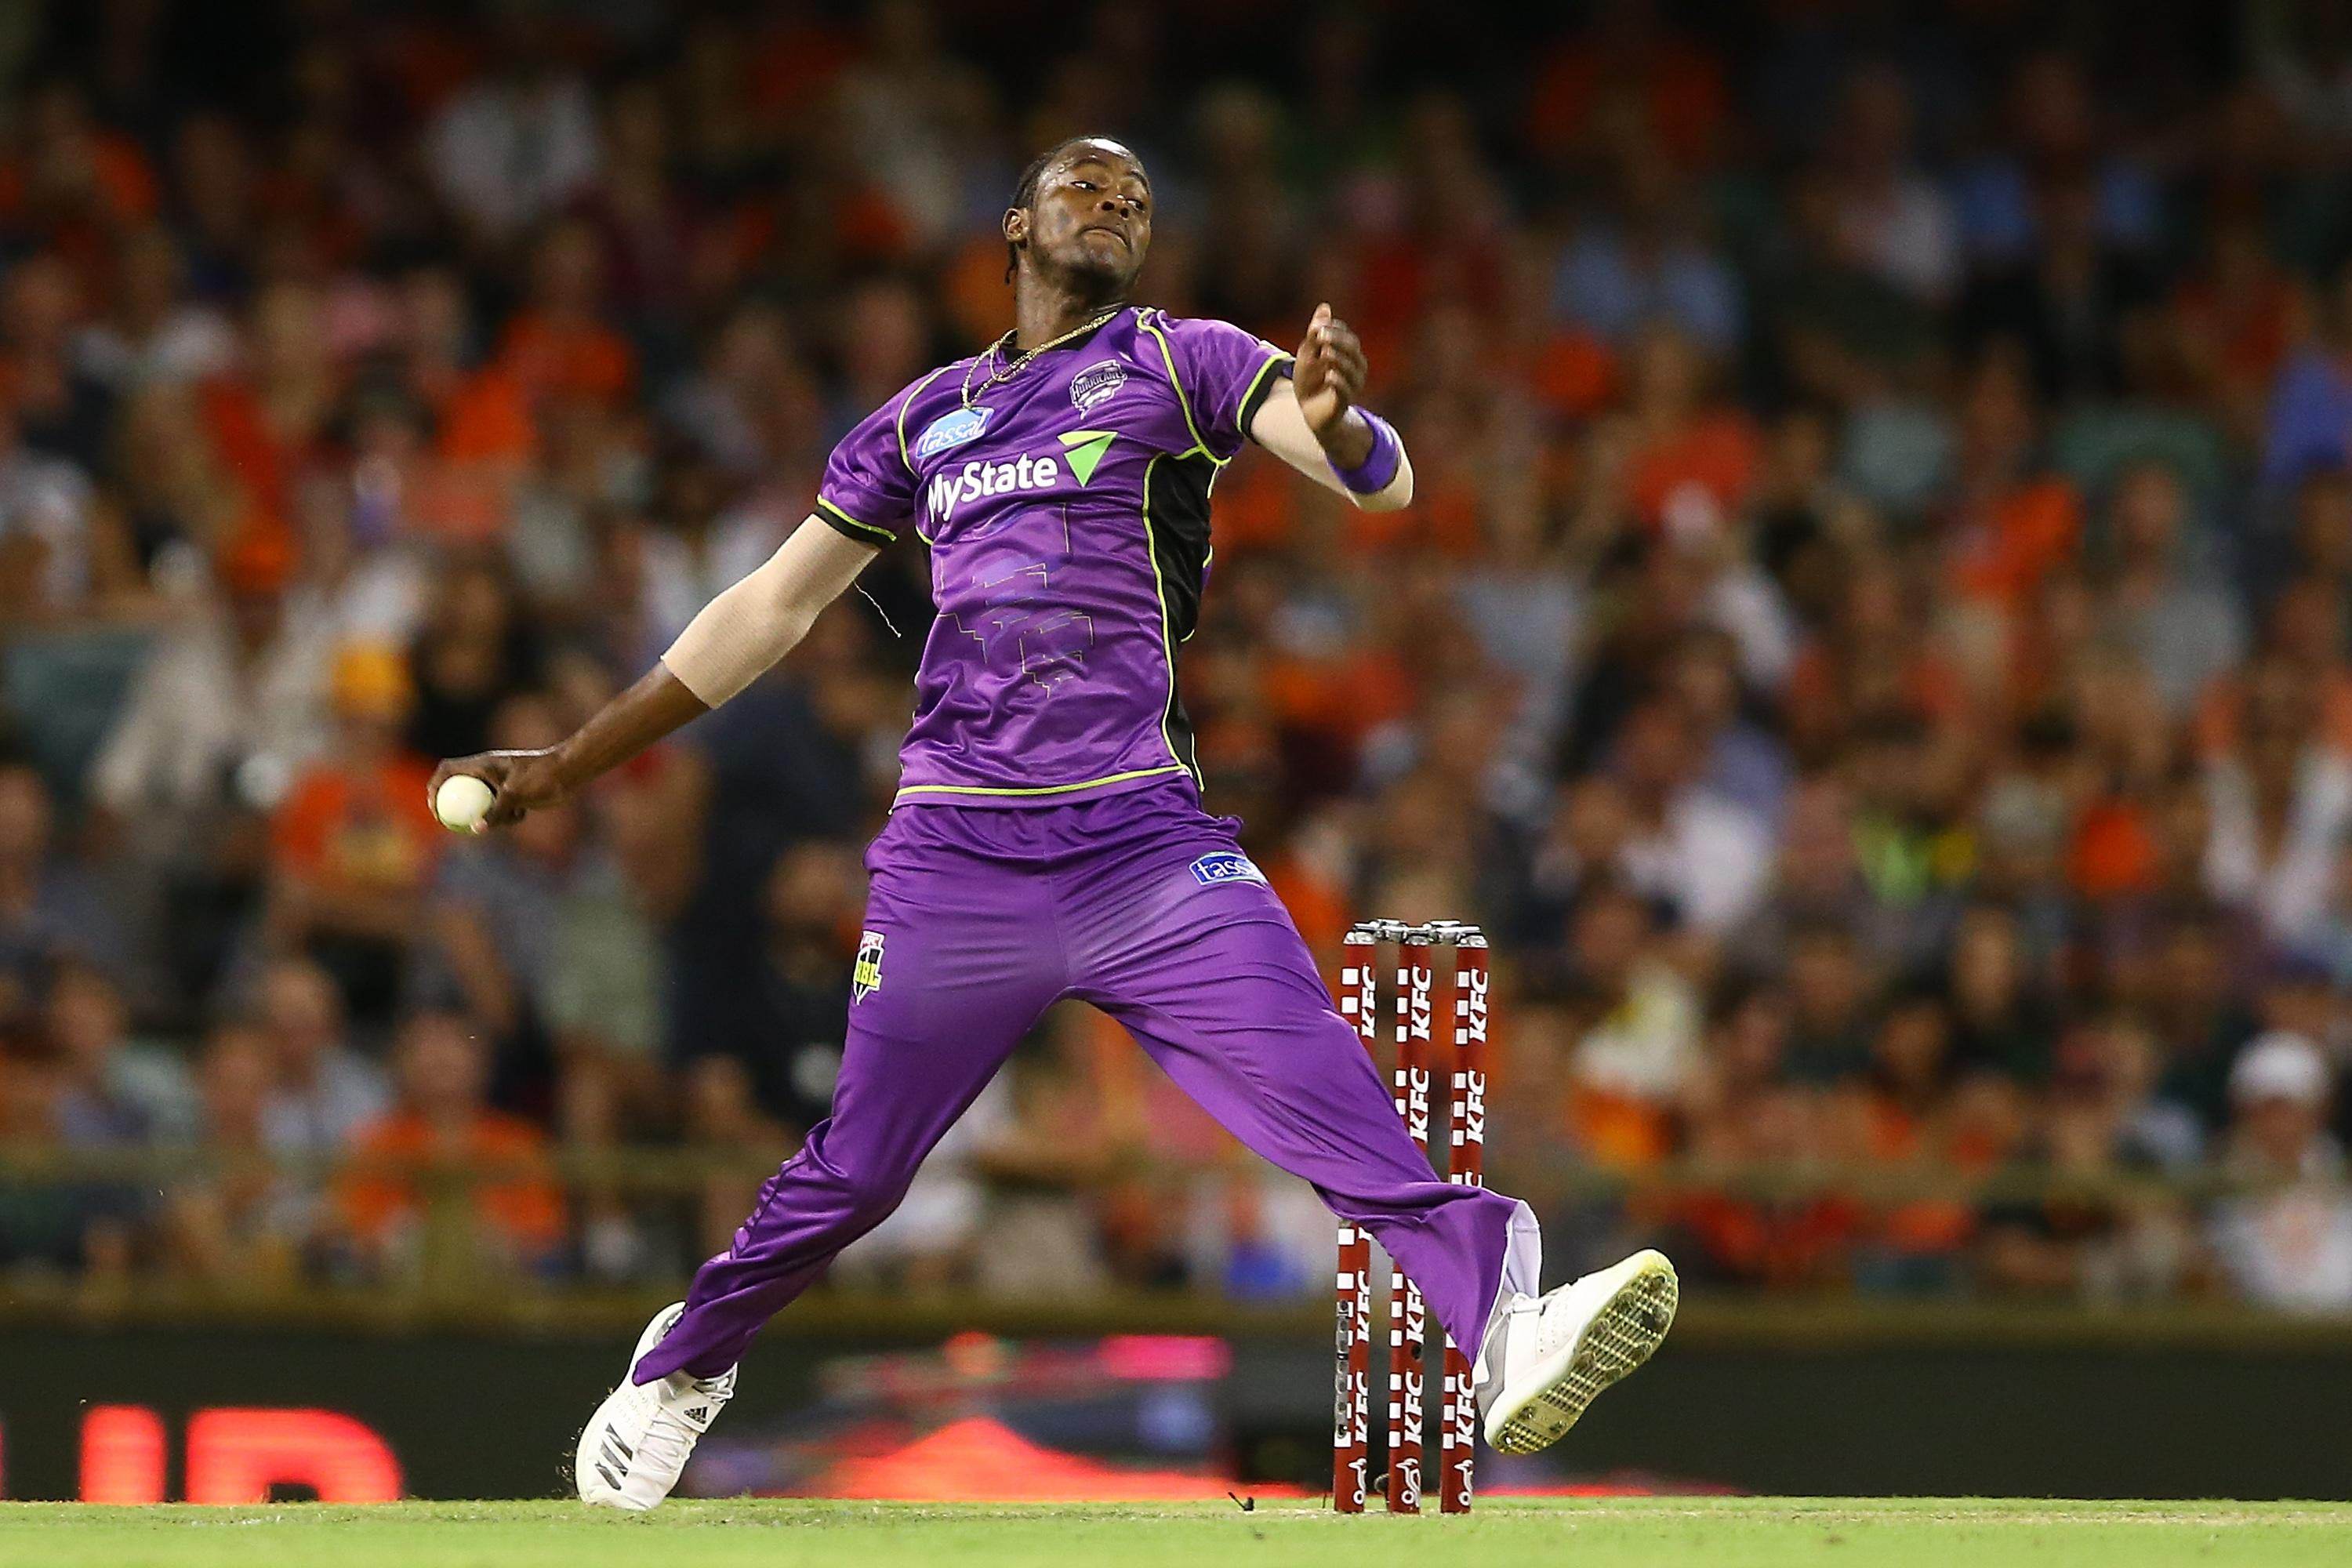 Jofra Archer once bowled at 94mph - this shows what a weapon he could be for England